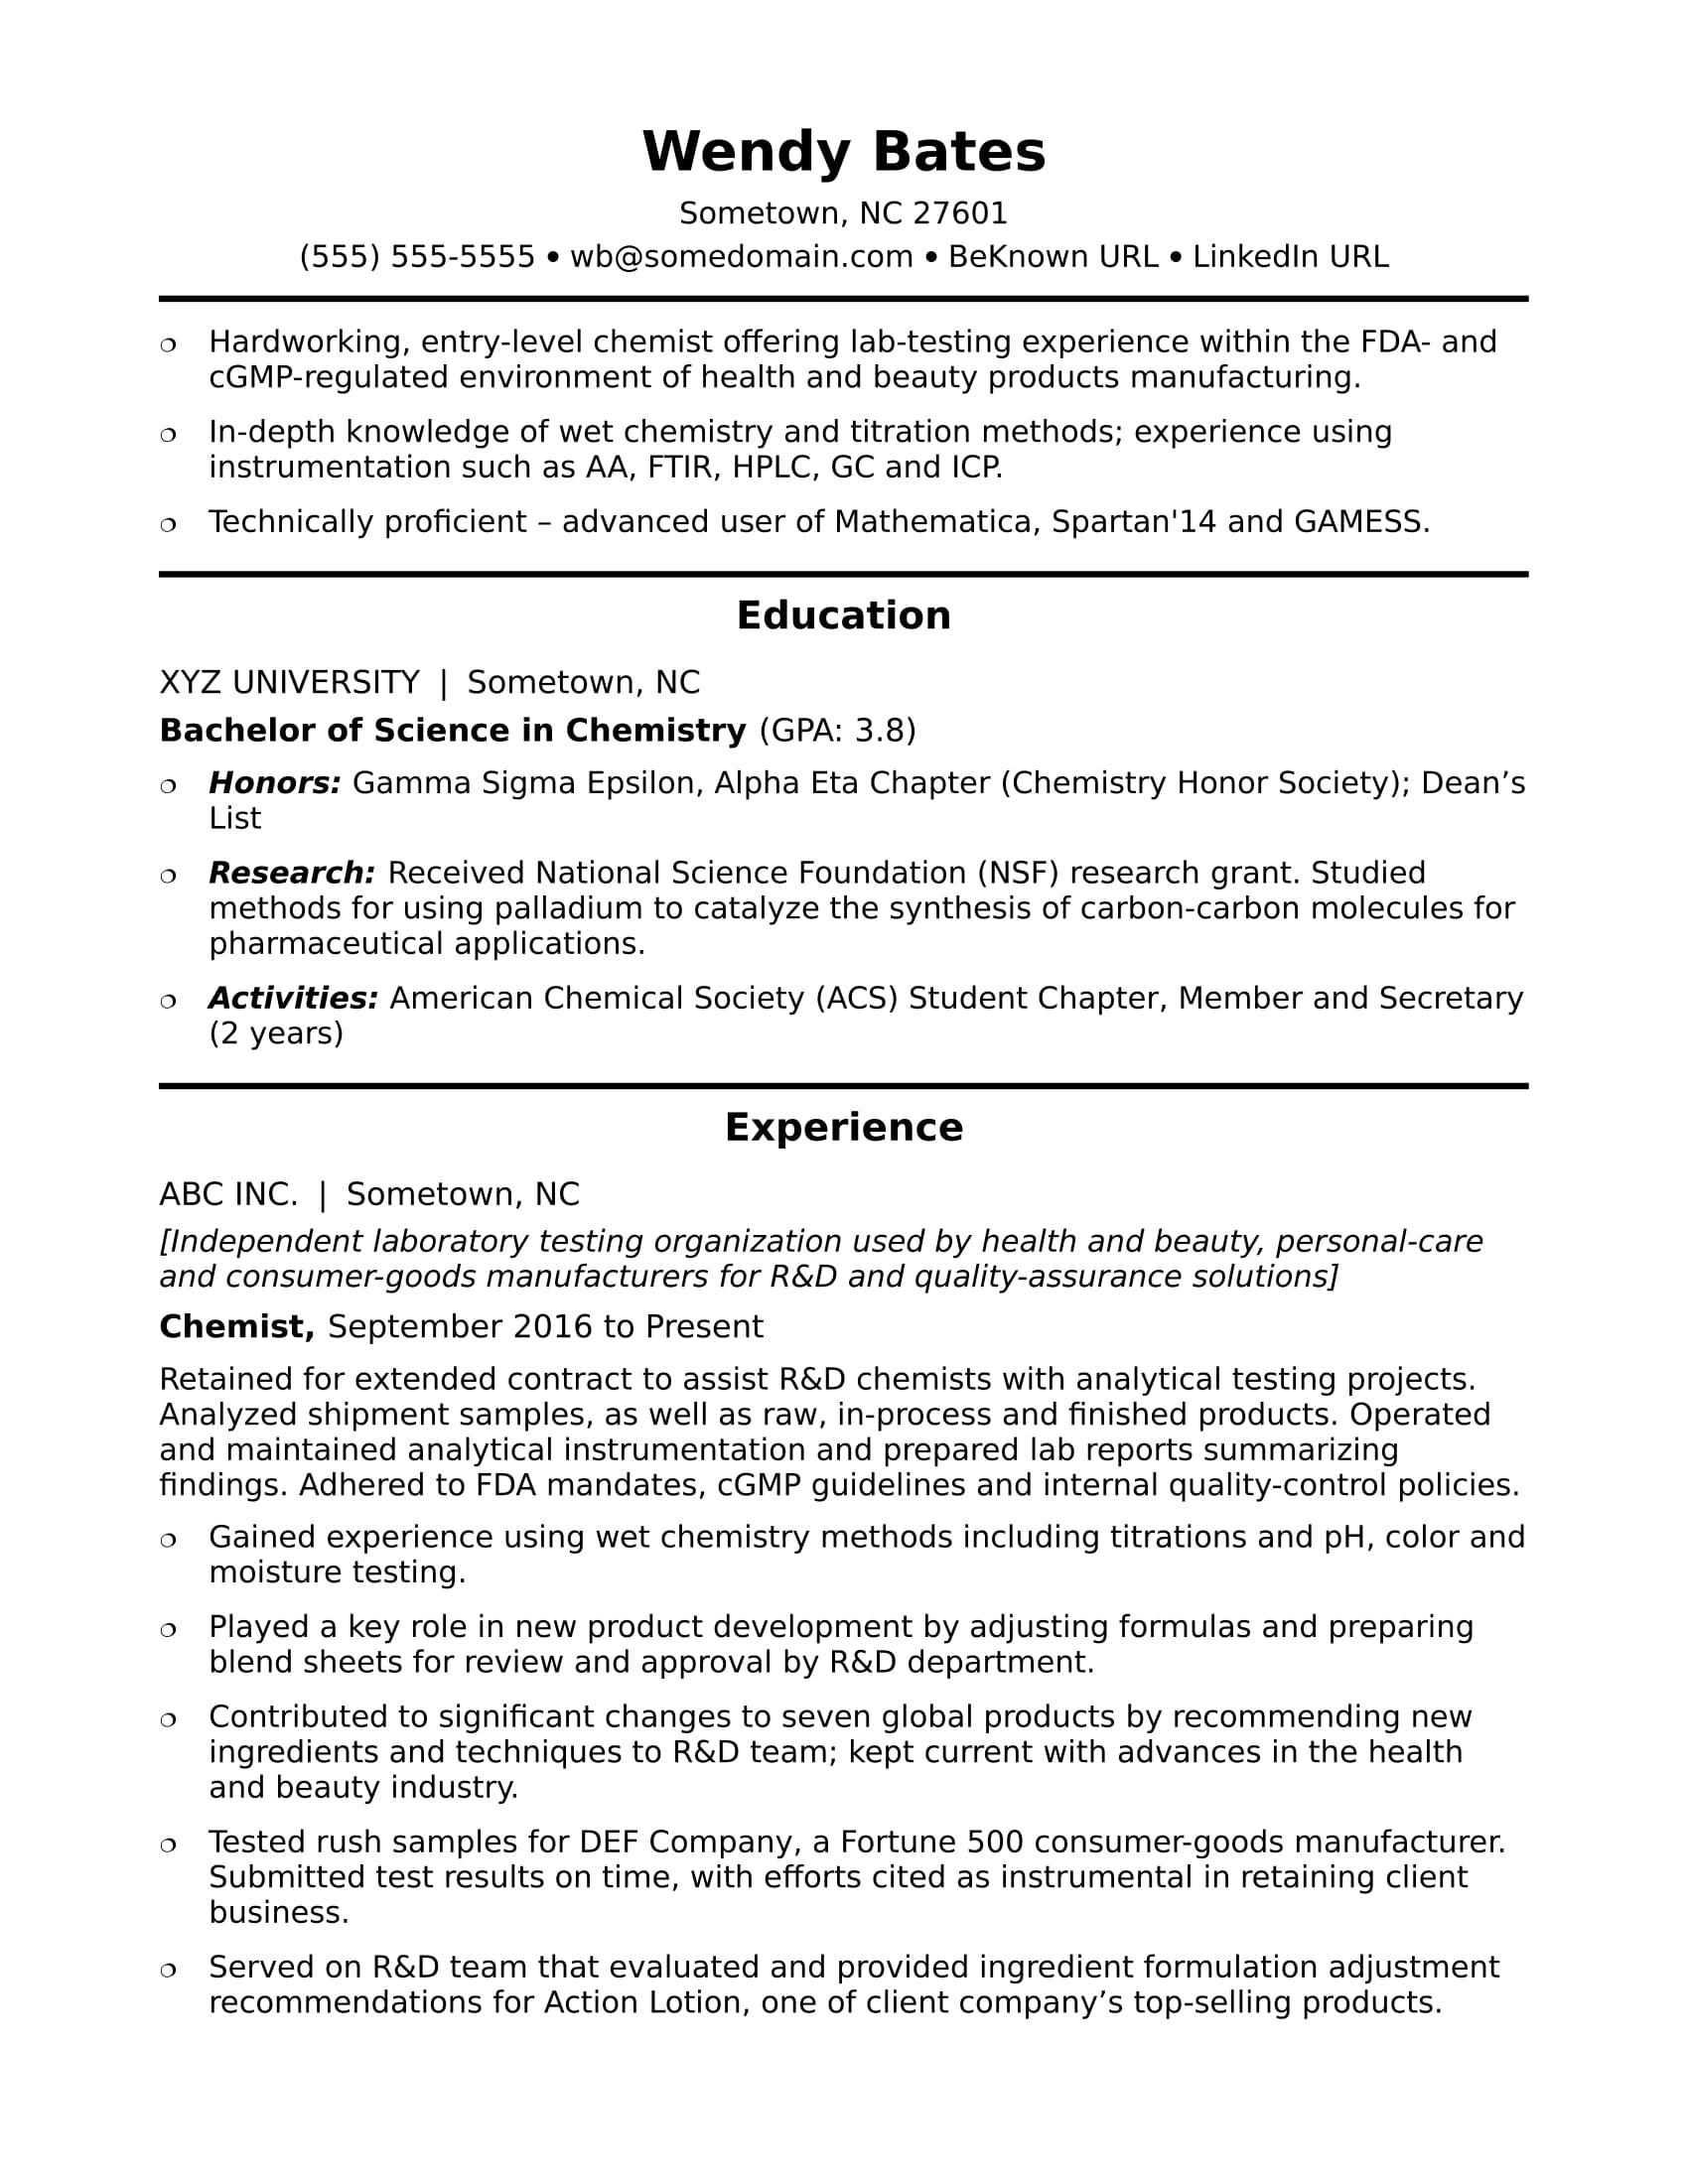 Sample Resume For An Entry Level Chemist  American Resume Samples